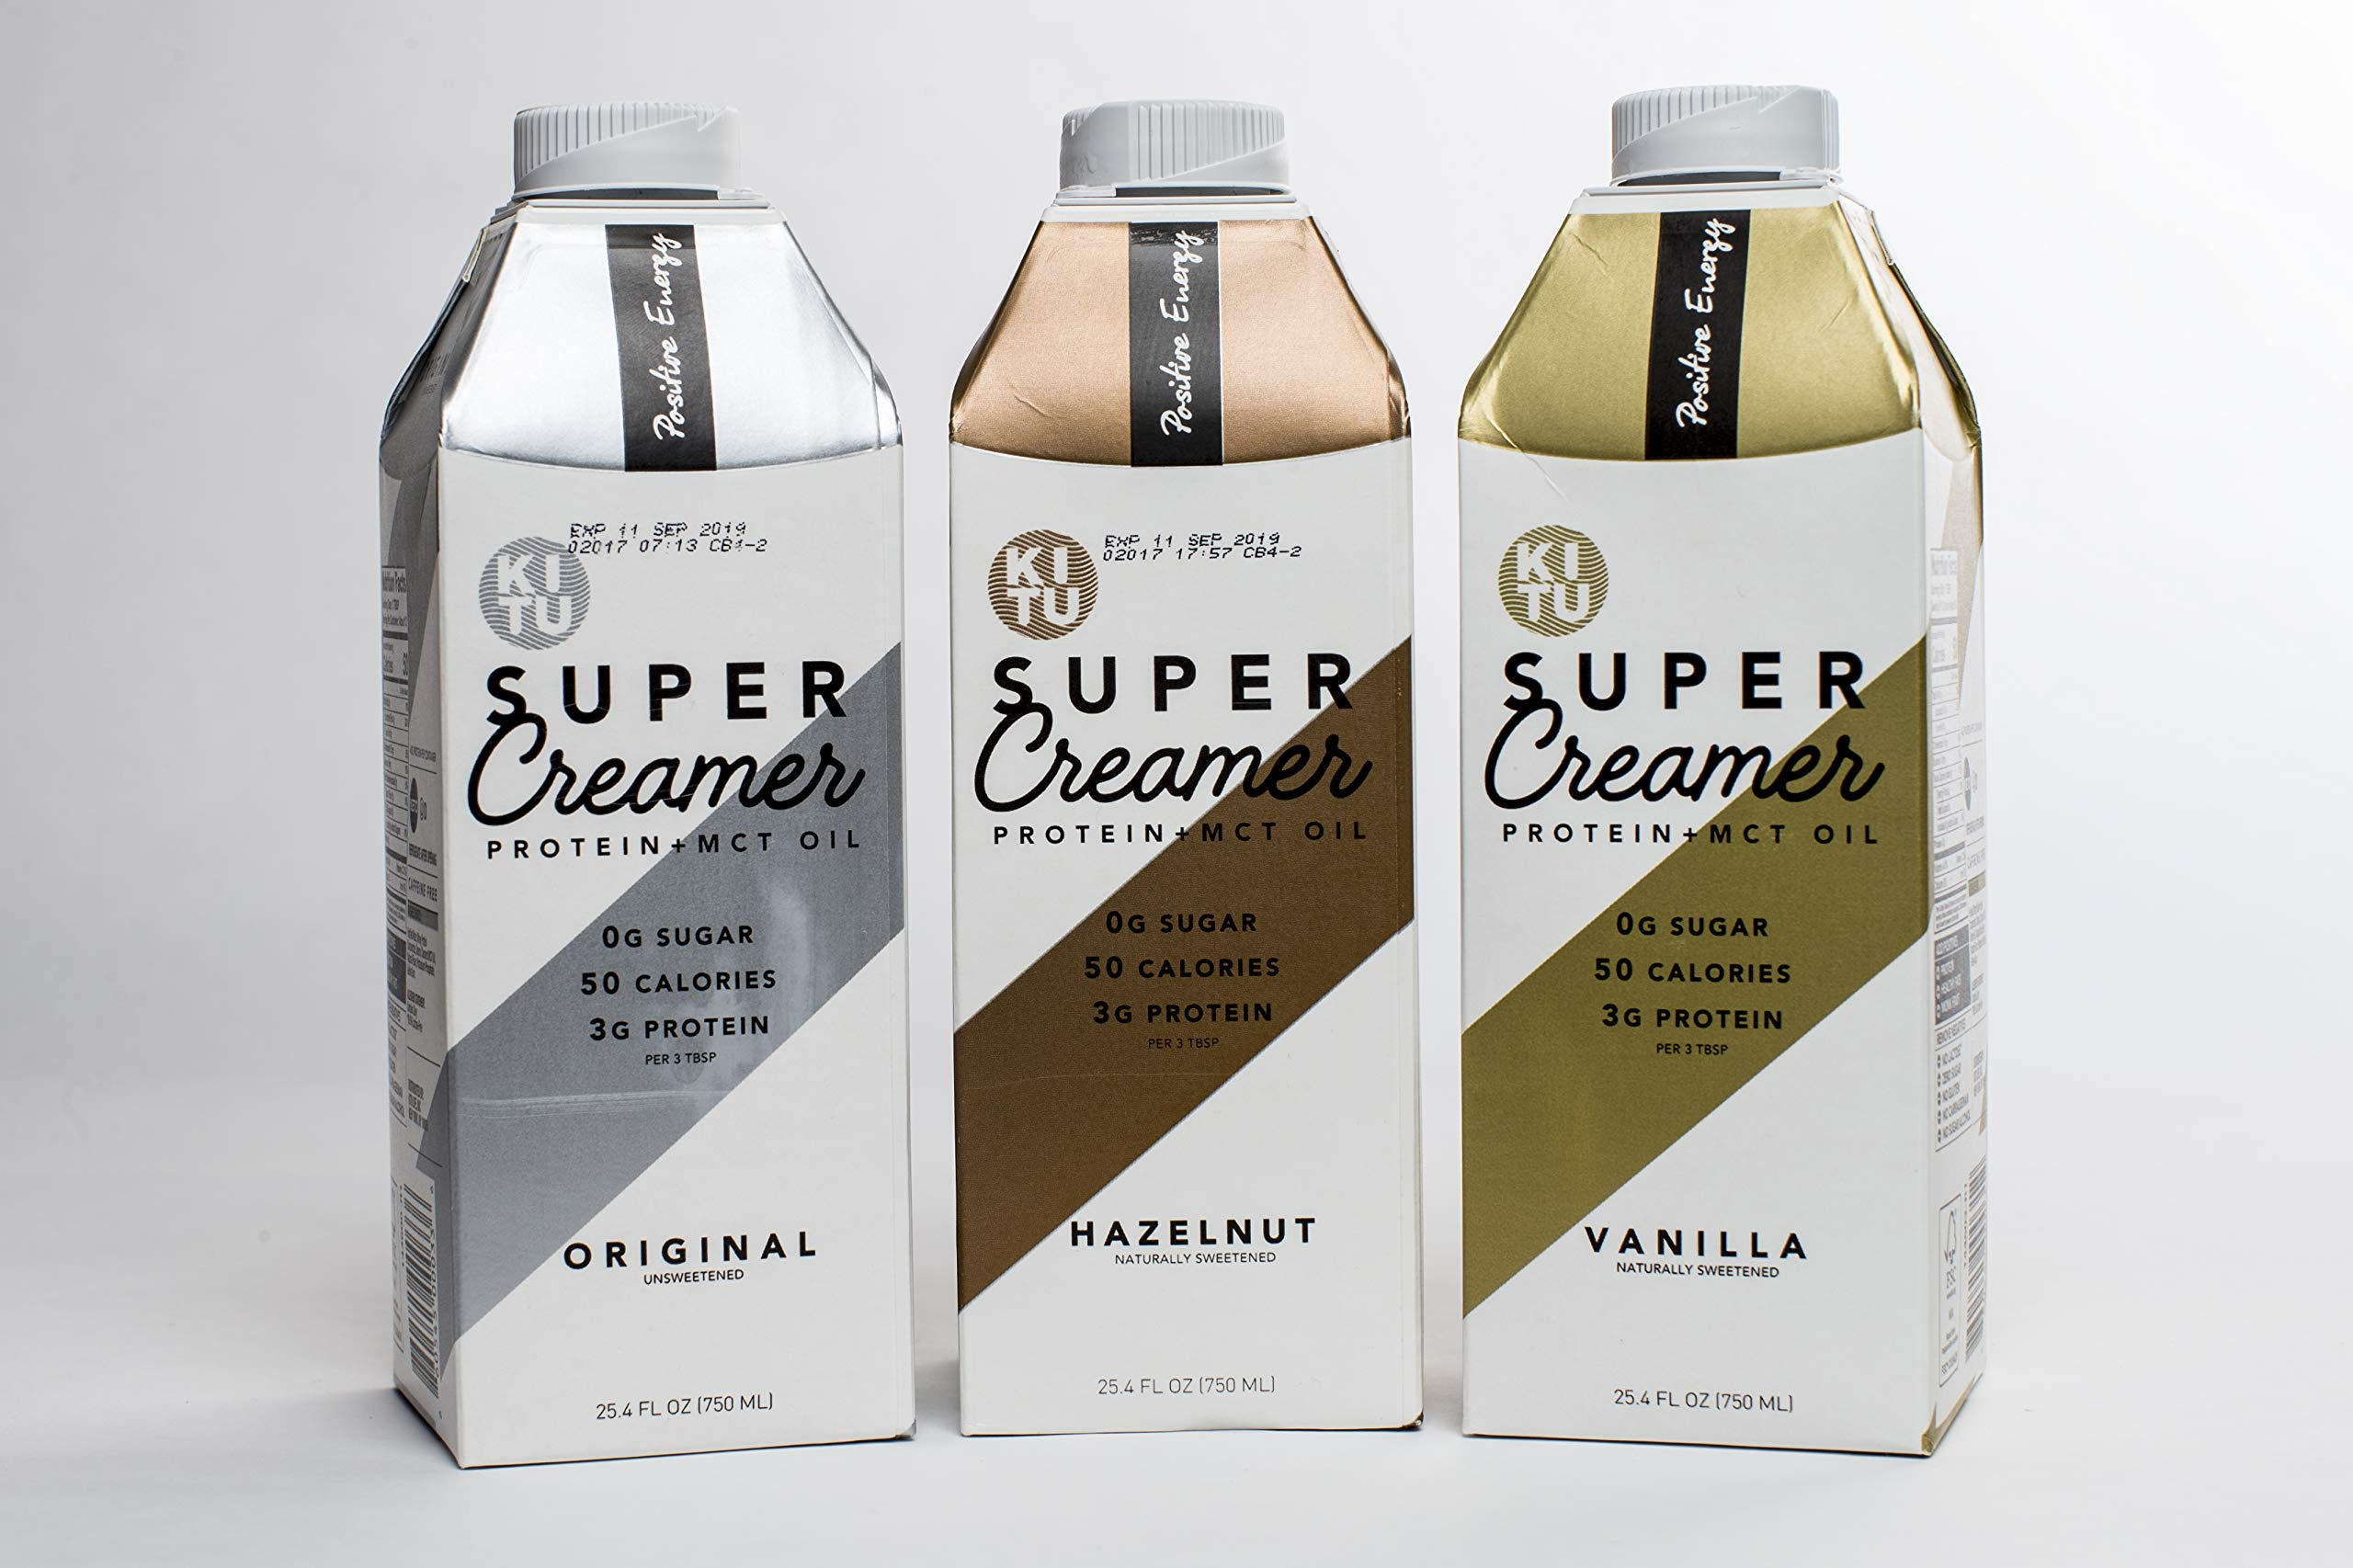 Kitu by SUNNIVA Super Creamer Variety Pack with Protein and MCT Oil, Keto Approved, 0g Sugar, 3 g Protein, 50 Calories, Pack of 3 by Sunniva Super Coffee (Image #3)